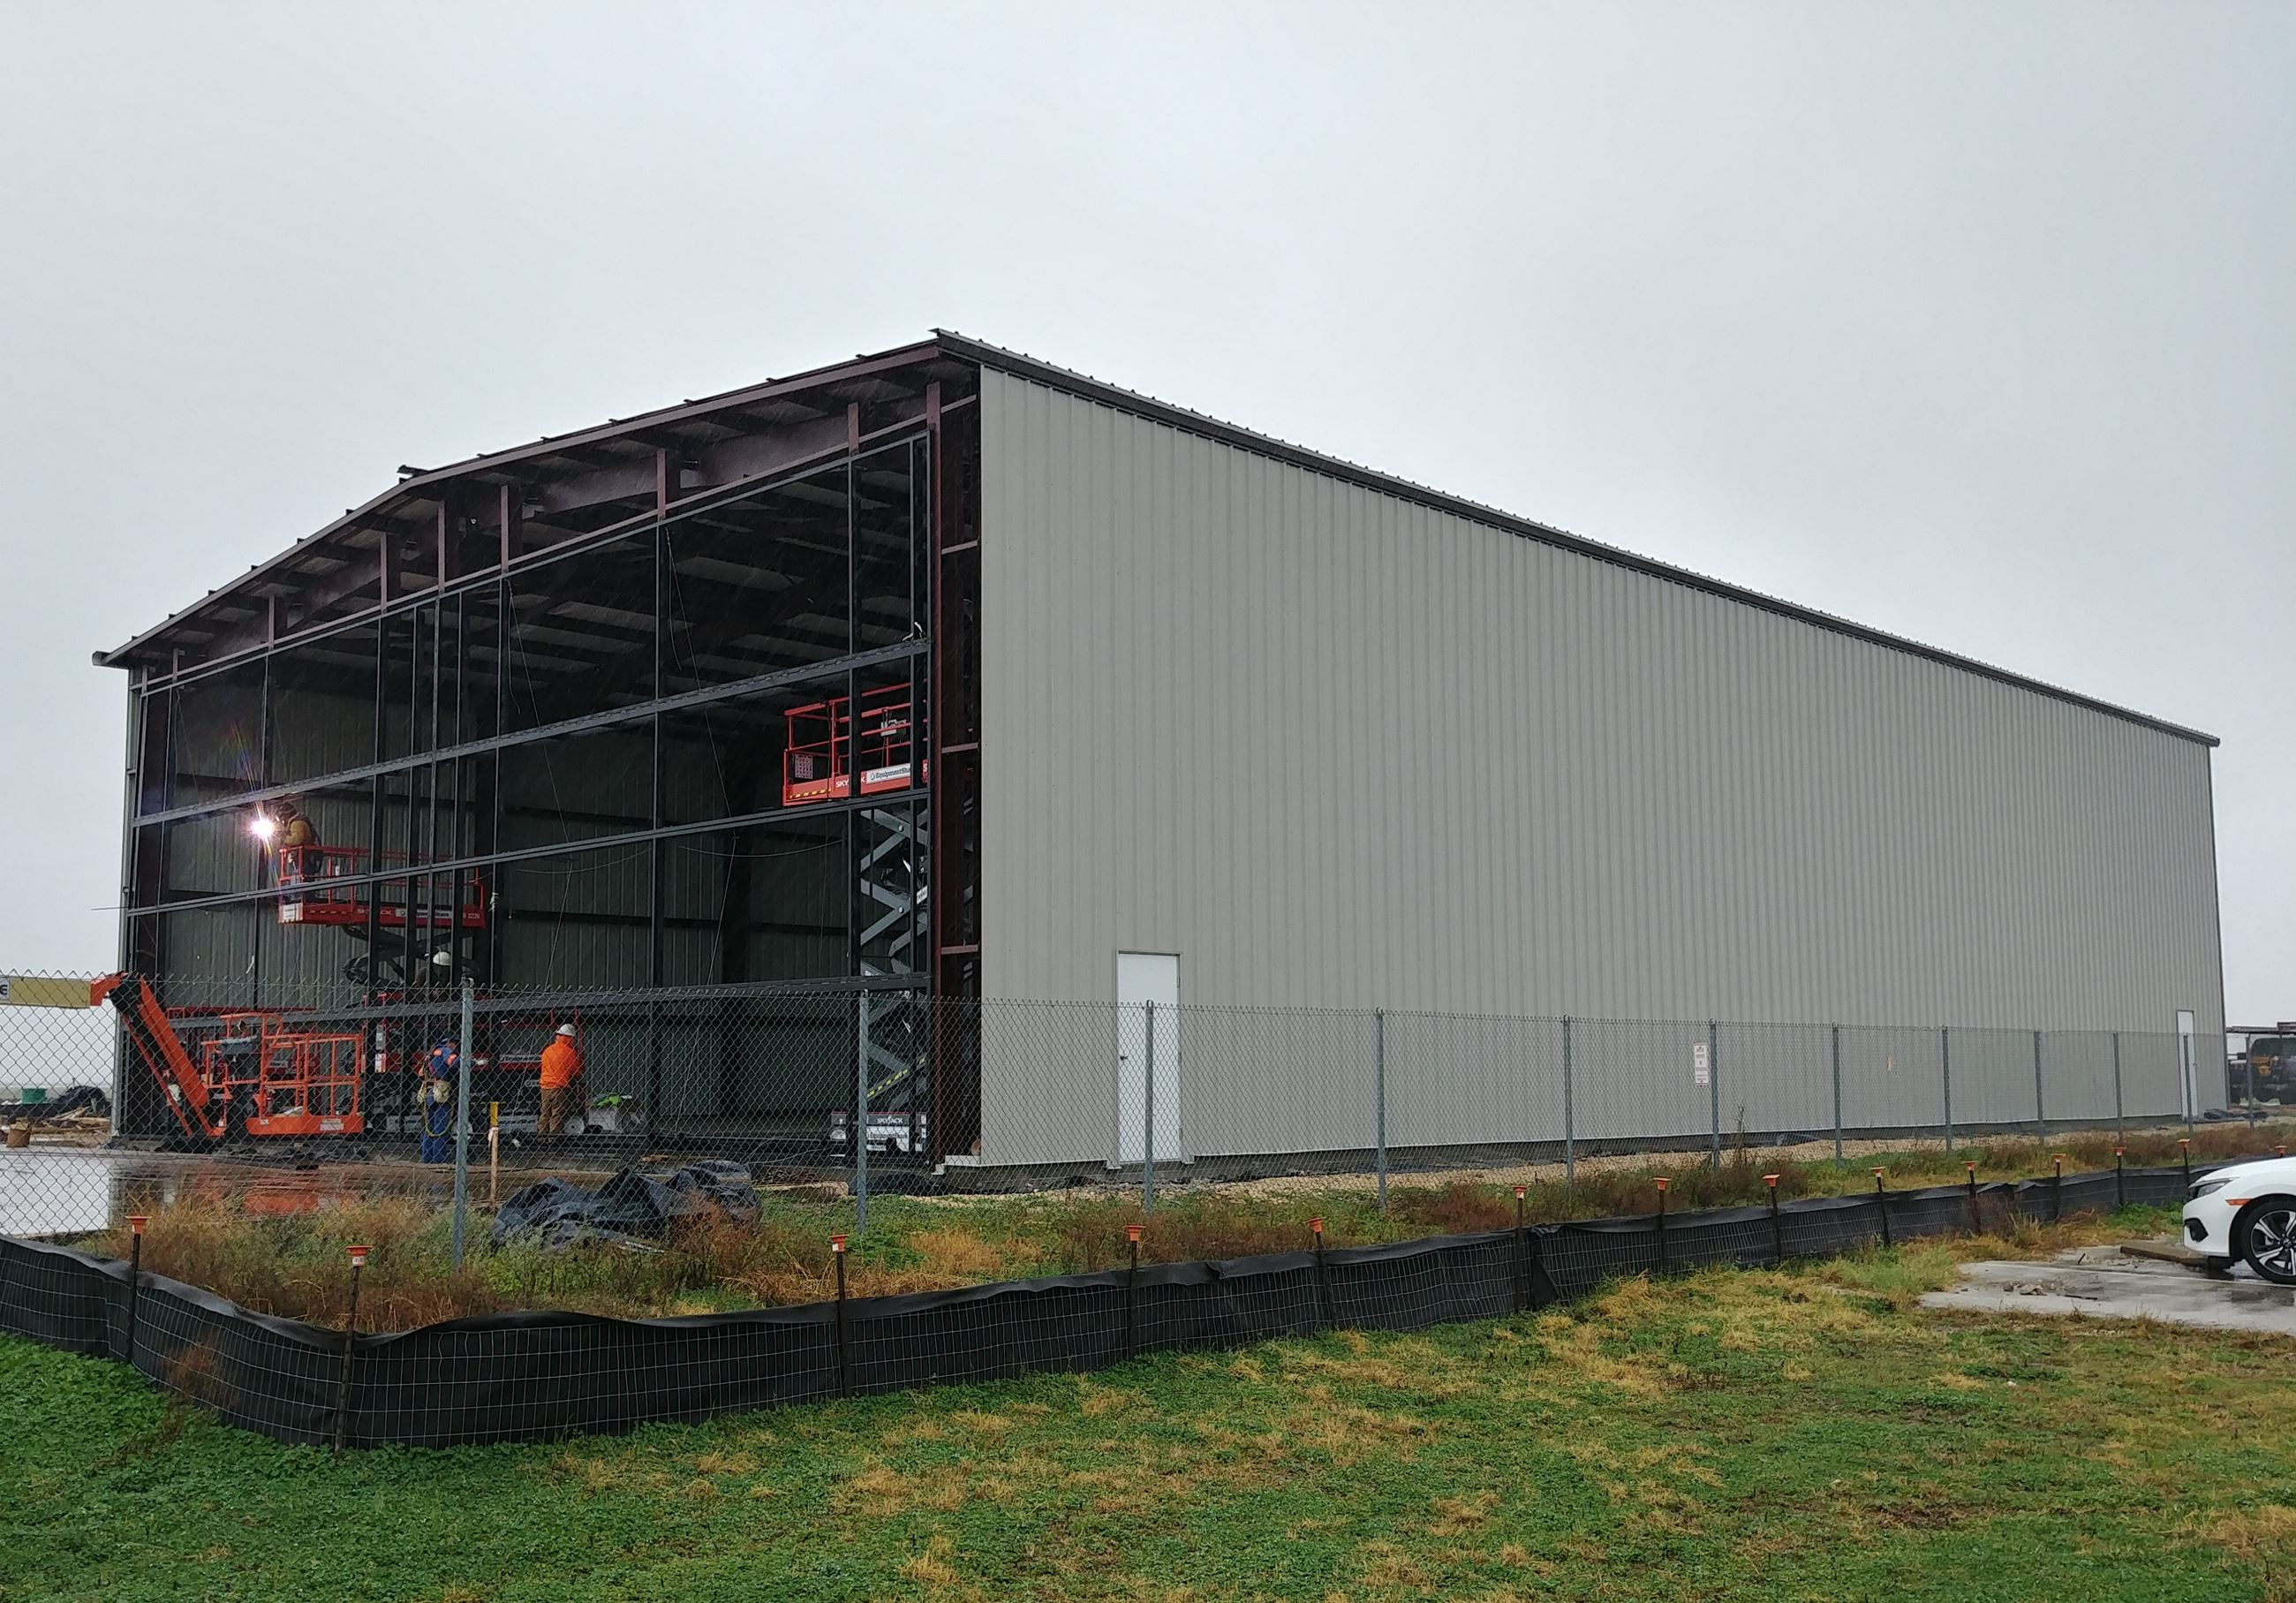 Exterior walls of hanger in construction